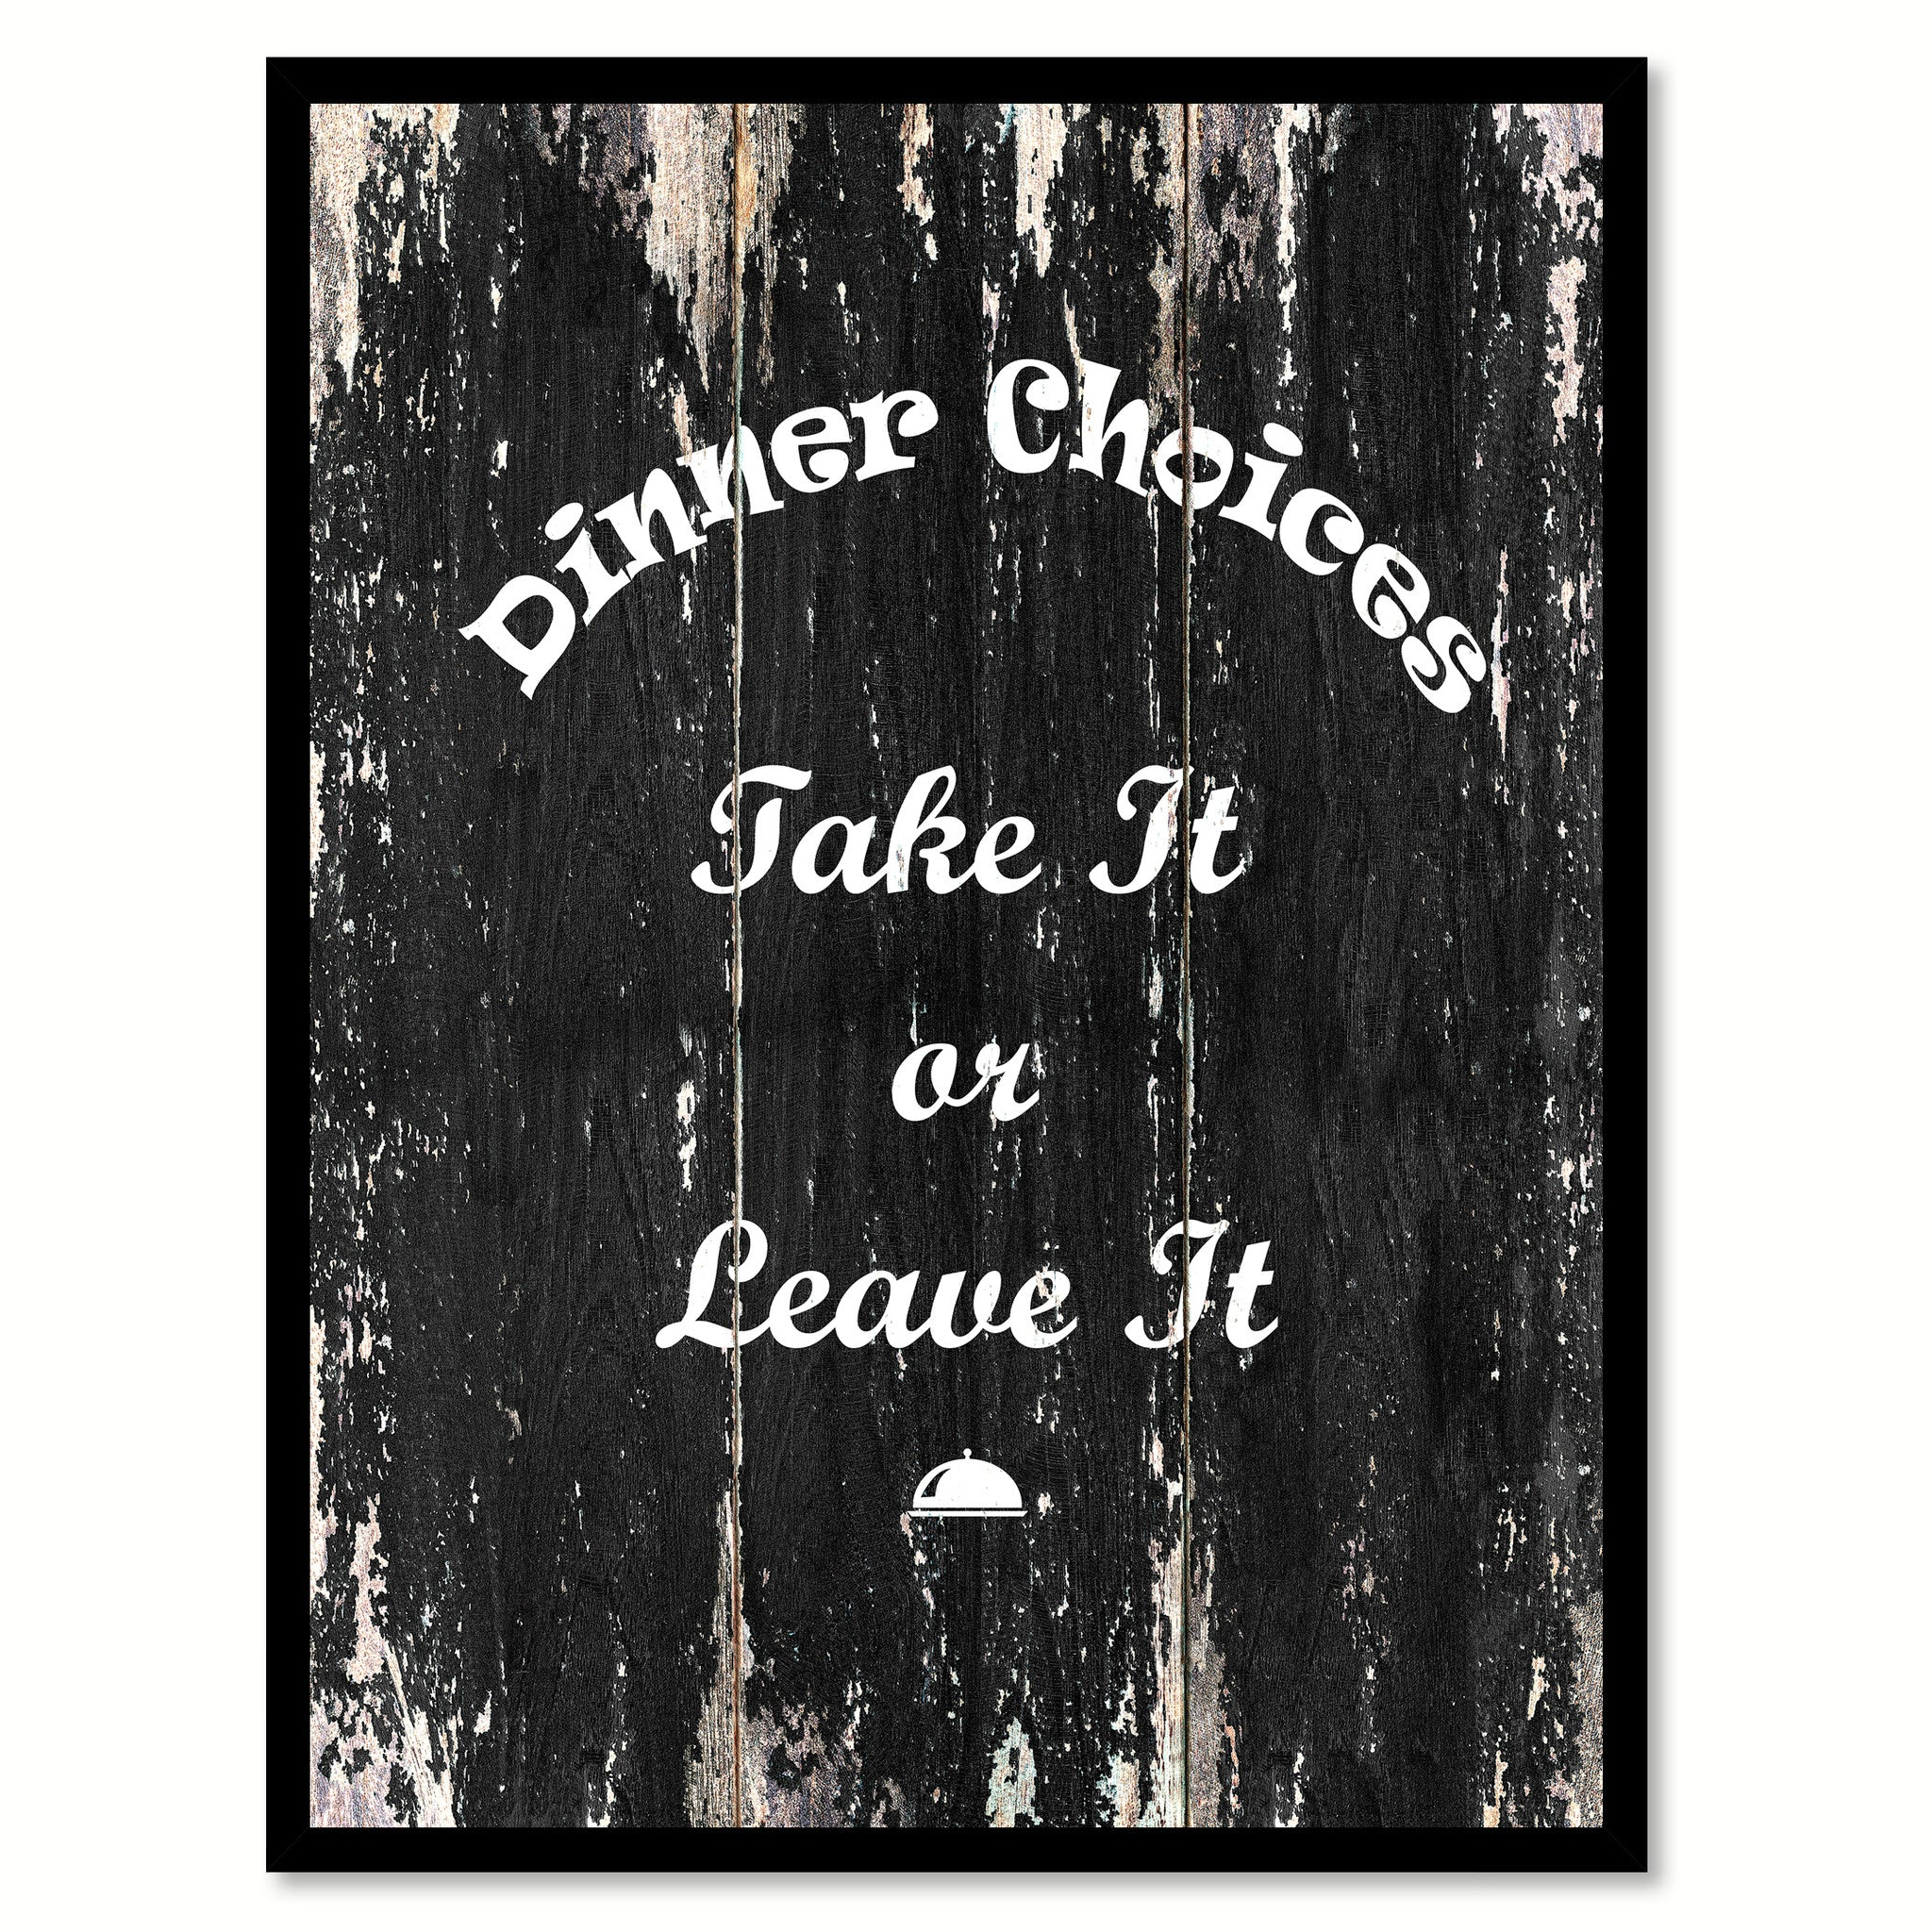 Dinner Choices take it or leave it Quote Saying Canvas Print with Picture Frame Home Decor Wall Art